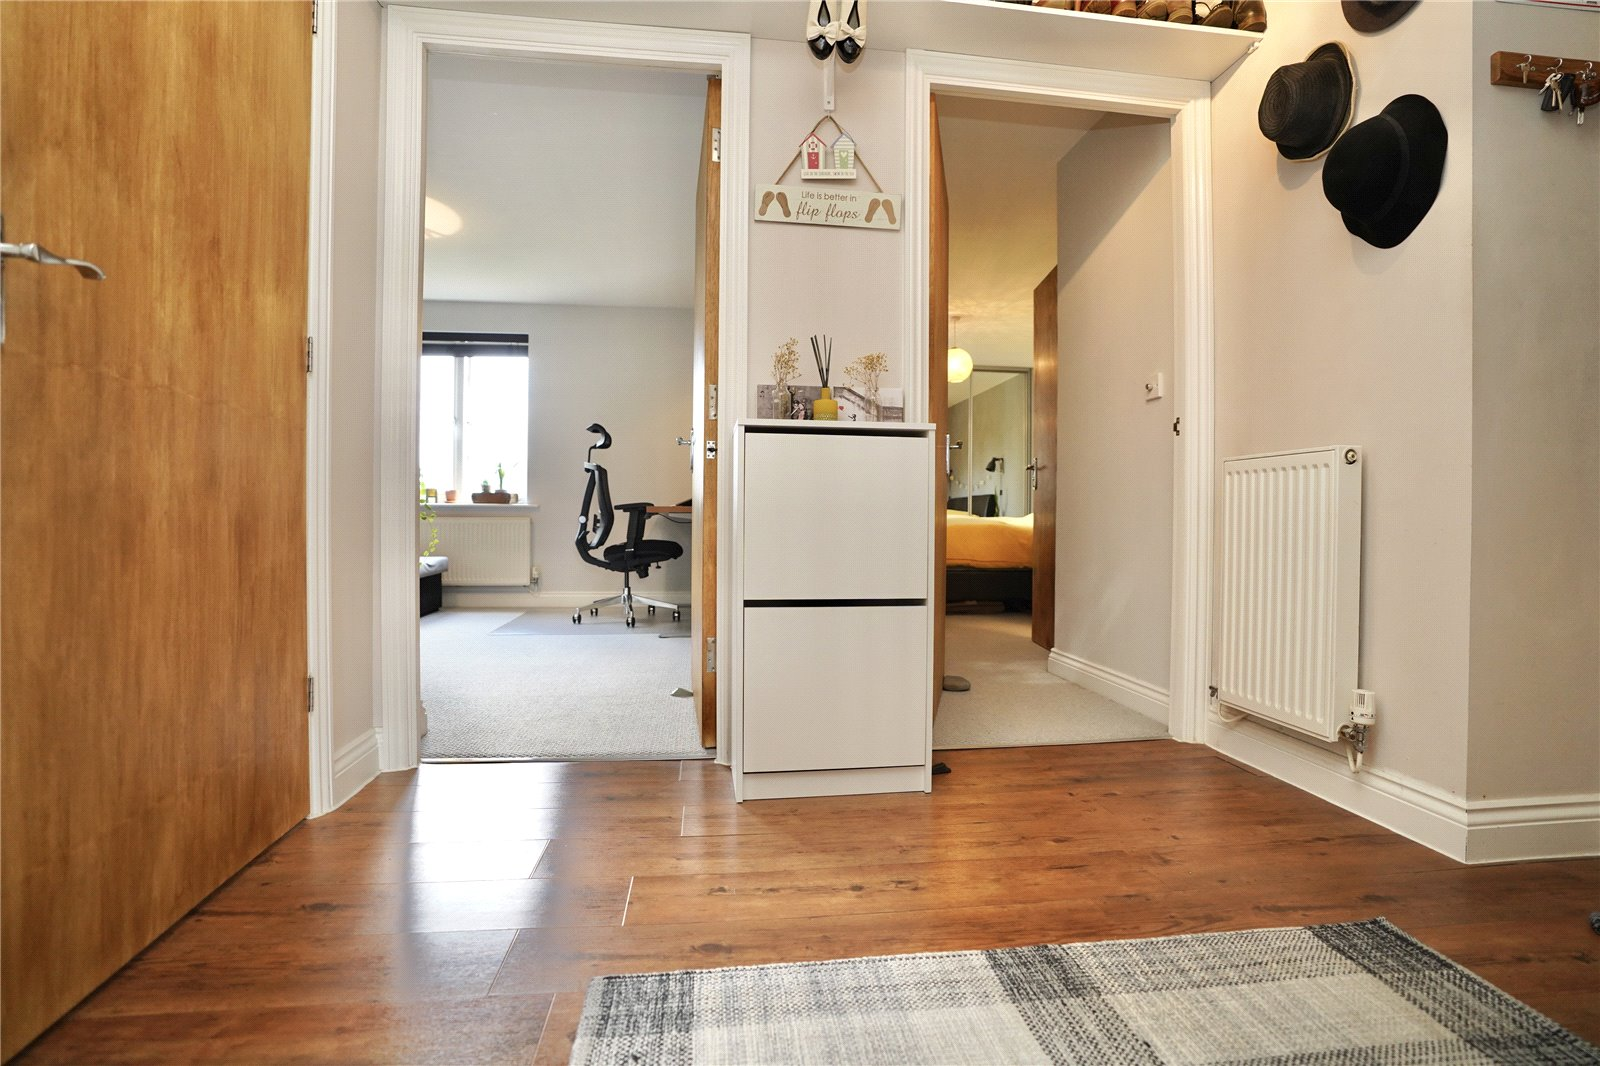 2 bed apartment for sale in St. Ives, PE27 5QL  - Property Image 6